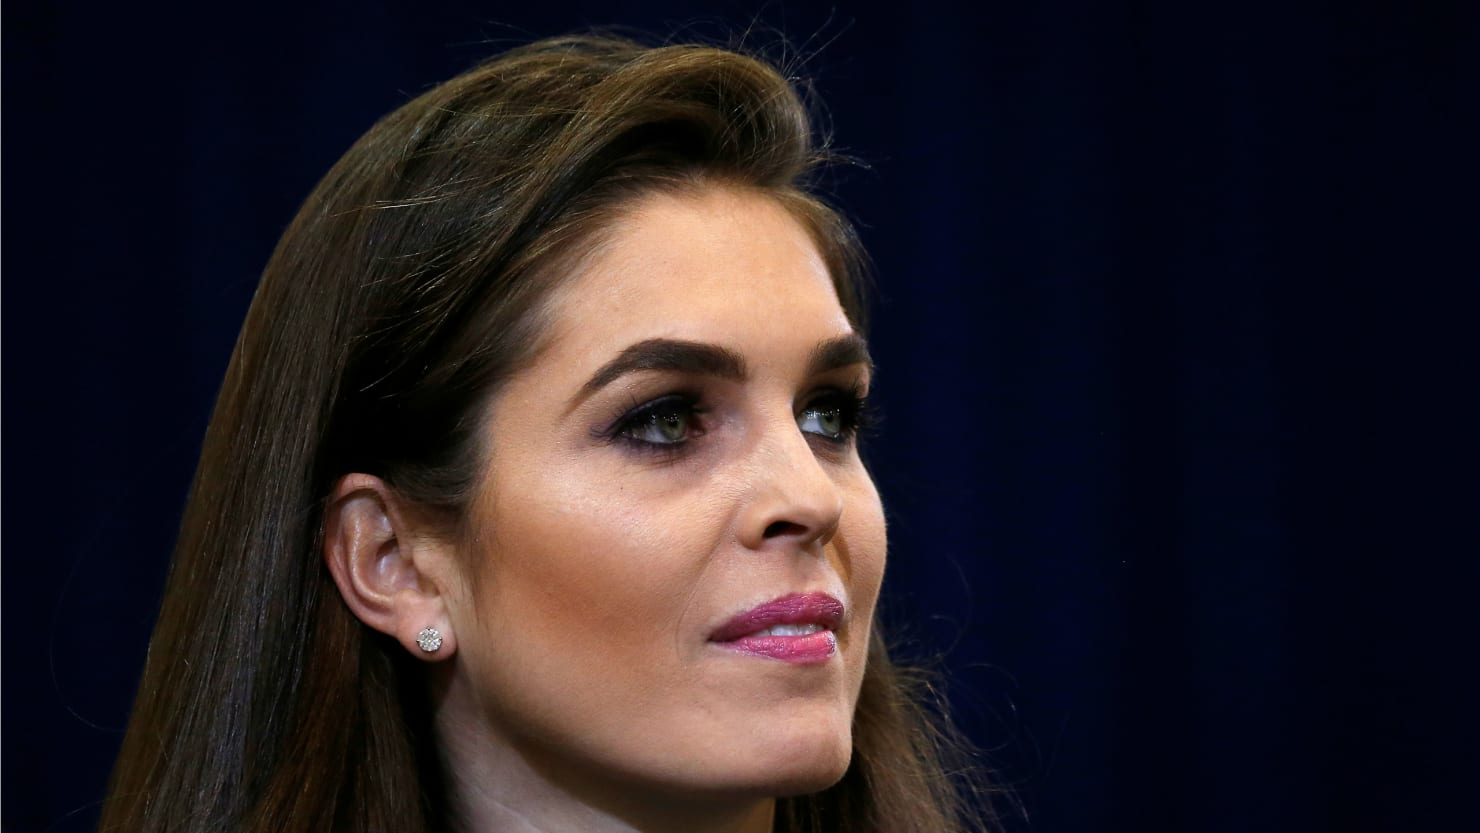 Hope Hicks Wikipedia >> Report: Witness to Tell Mueller He Was Concerned Hope Hicks Obstructed - The Daily Beast